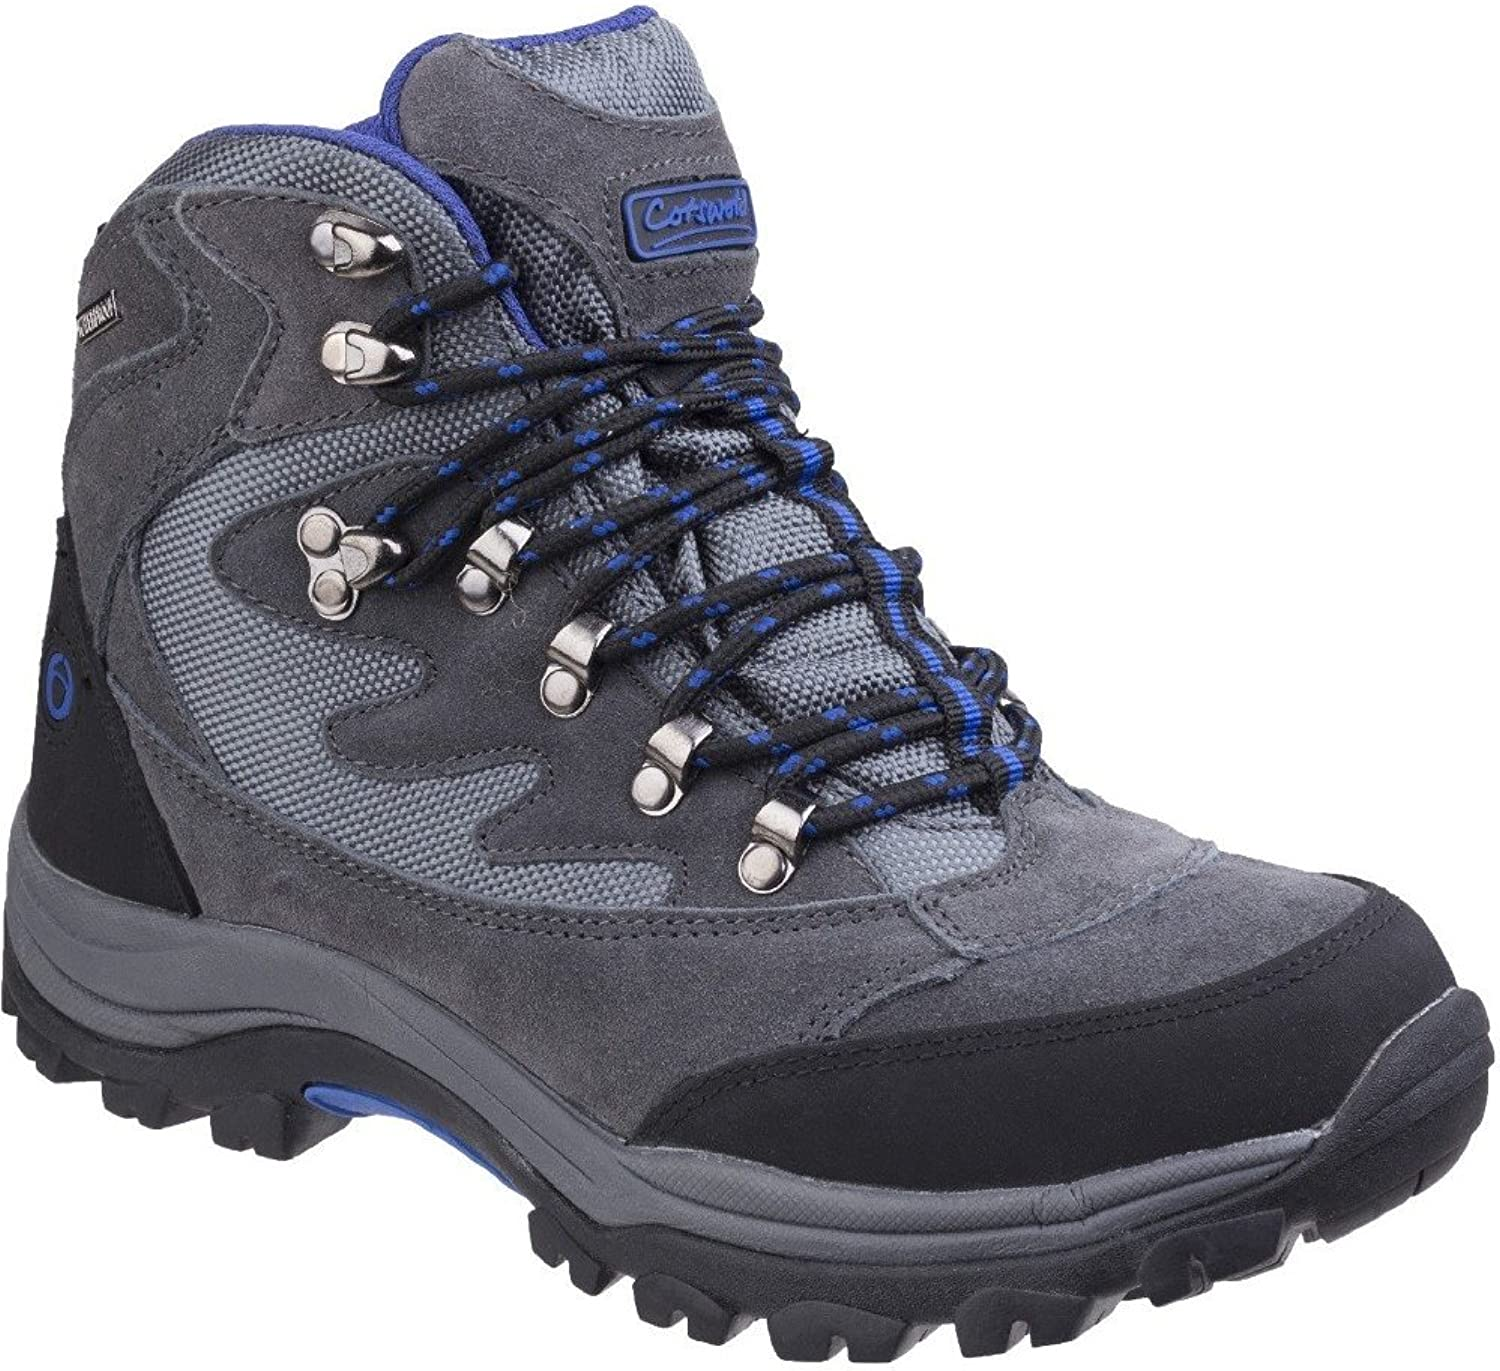 Cotswold Womens Oxerton Waterproof Hiker Grey Size UK 6 EU 39